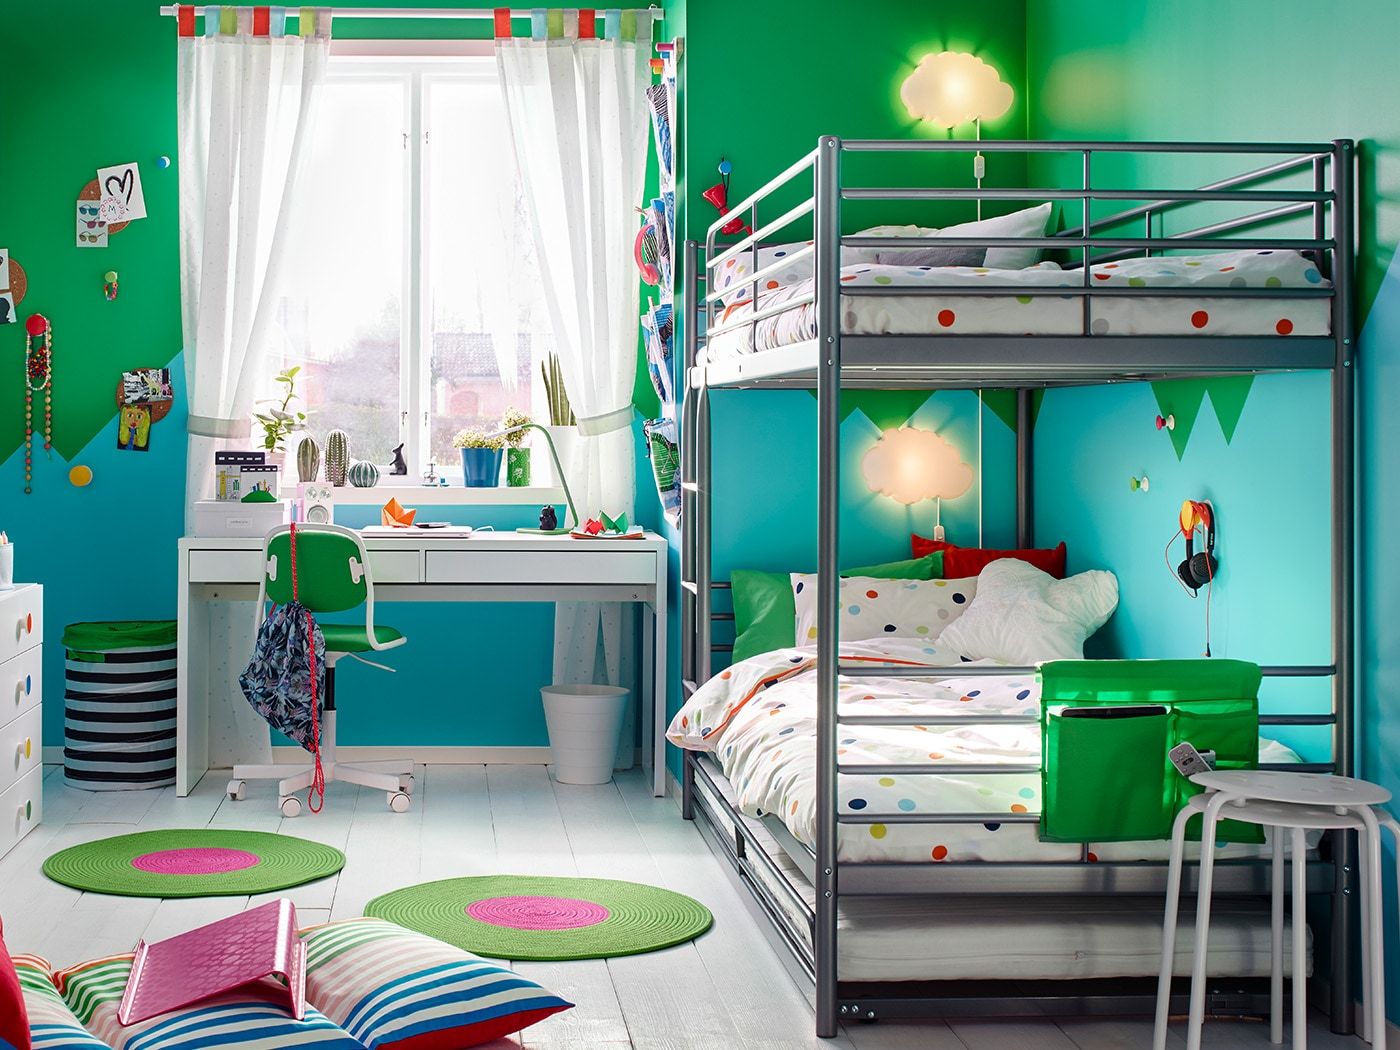 A SVÄRTA bunk bed frames with printed duvets and a white desk in a children's bedroom.